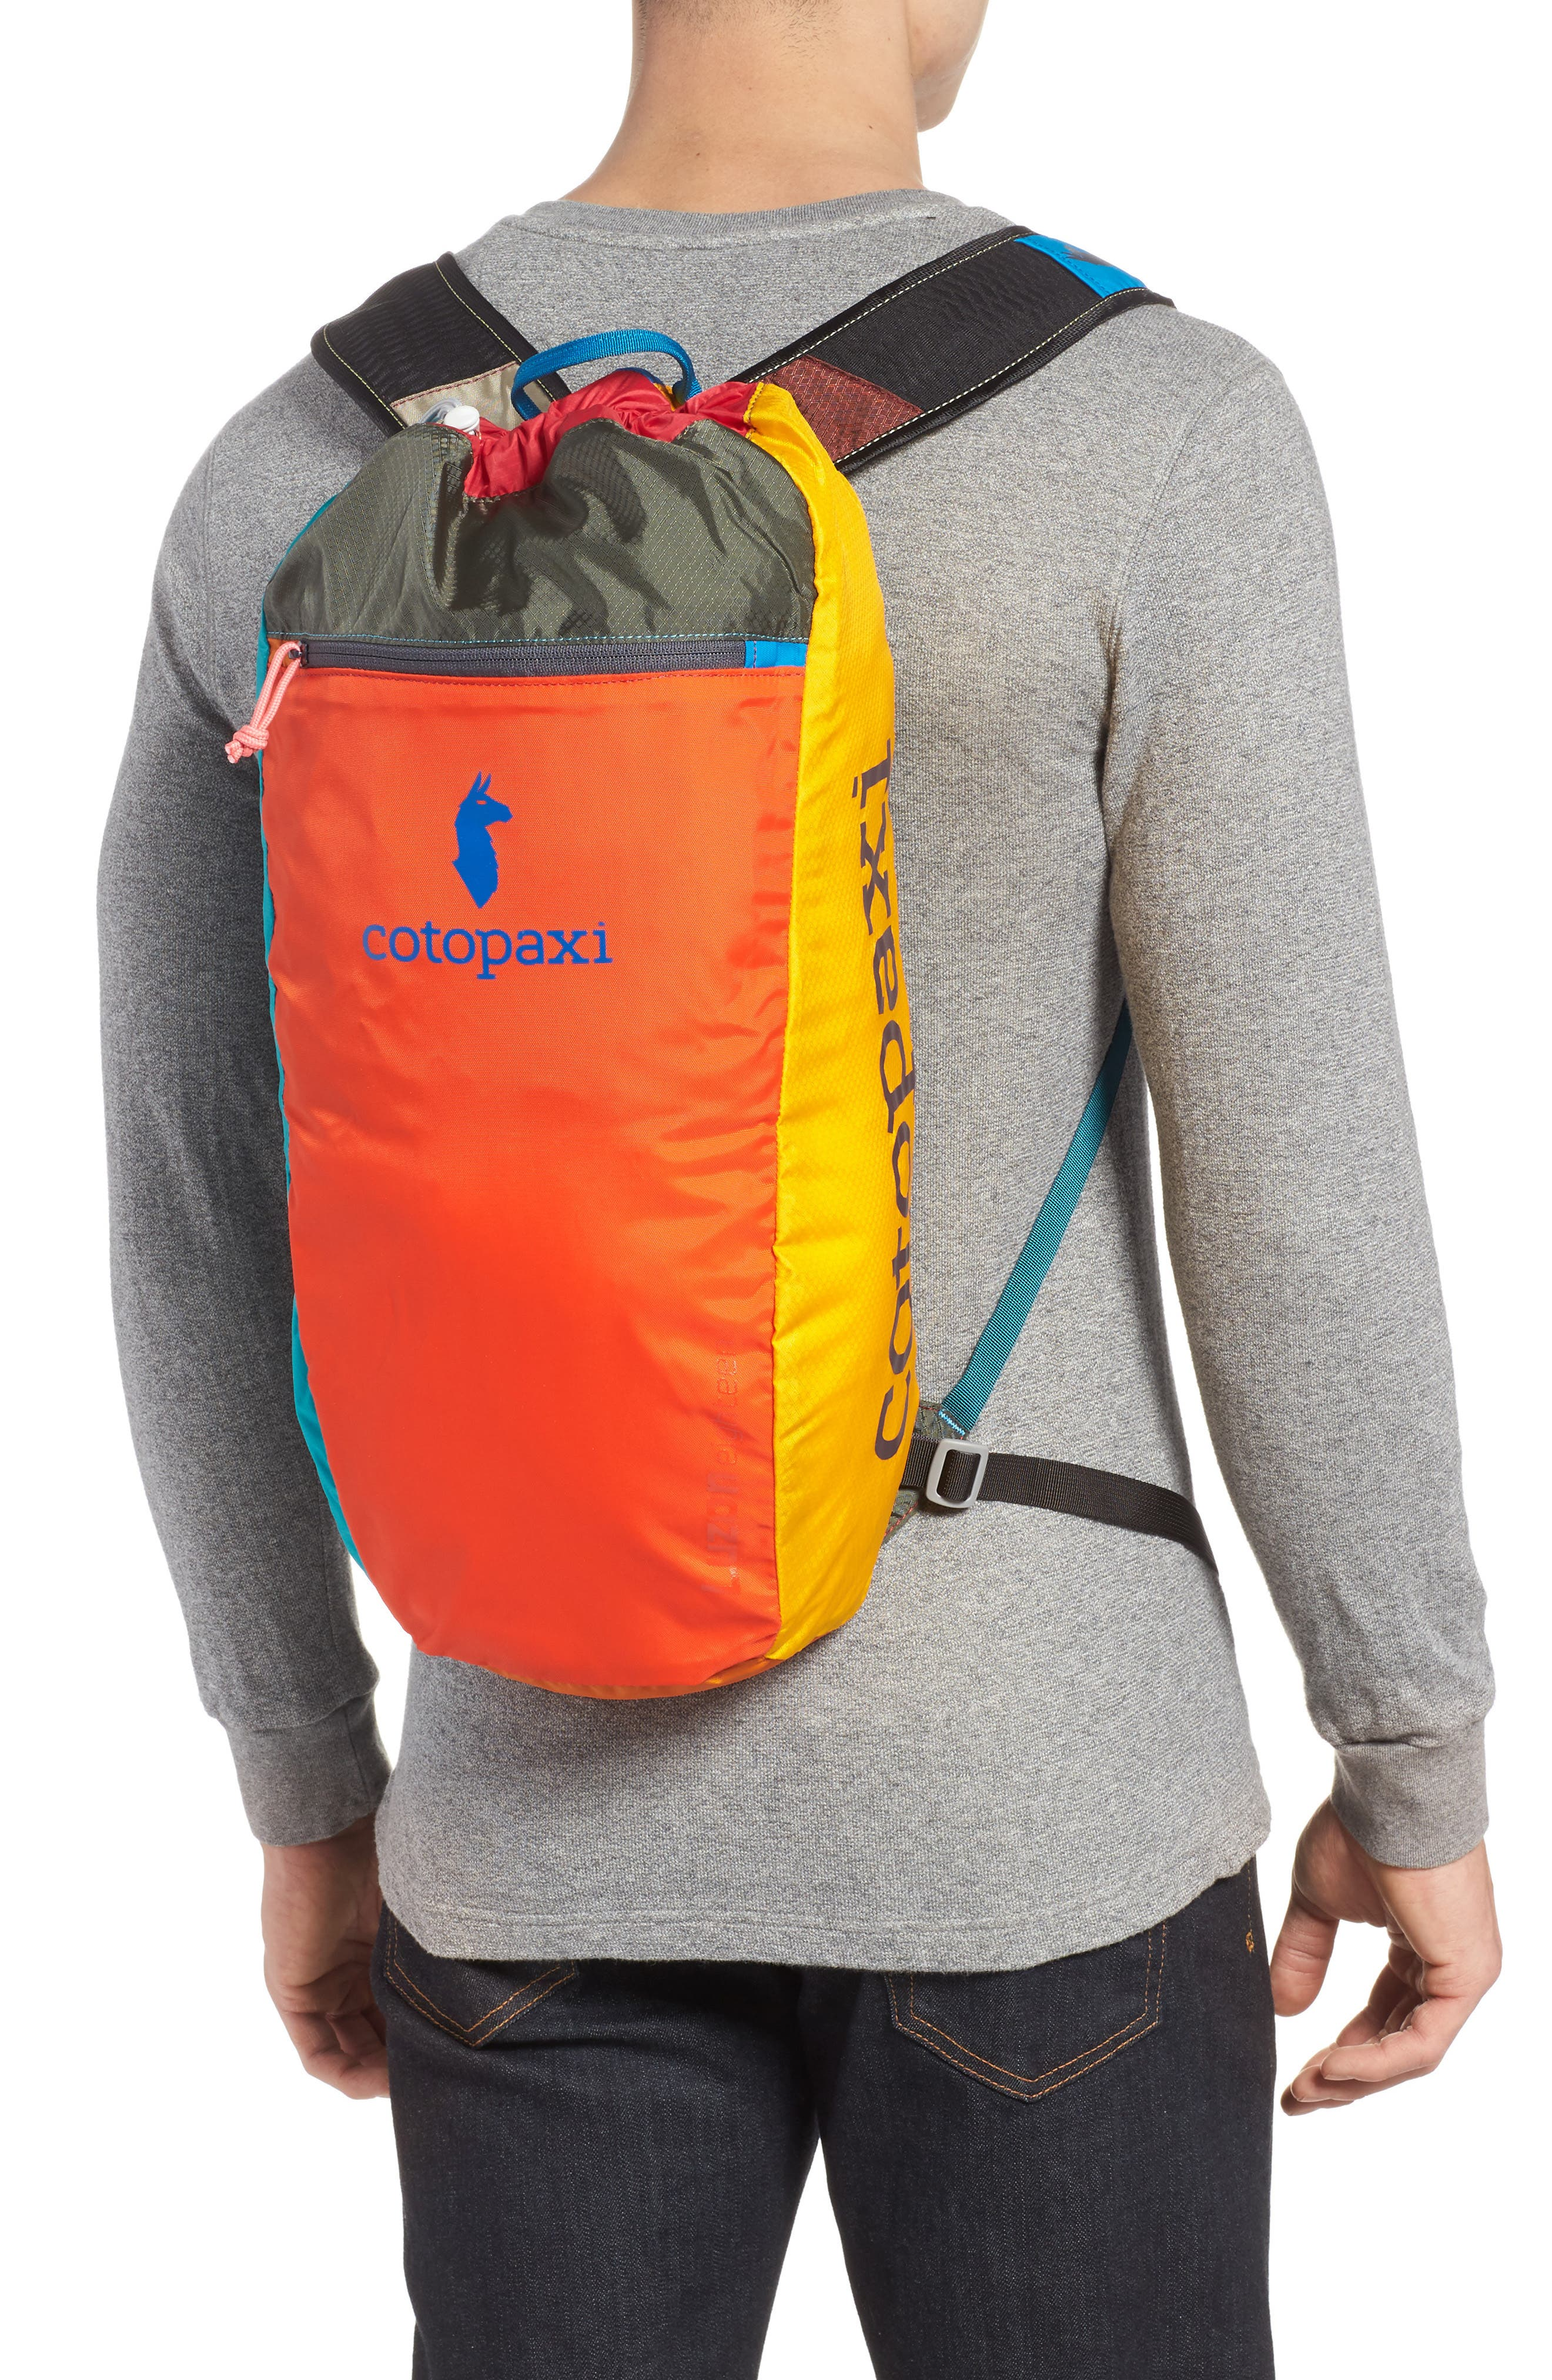 Luzon Del Día One of a Kind Ripstop Nylon Daypack,                             Alternate thumbnail 2, color,                             ASSORTED